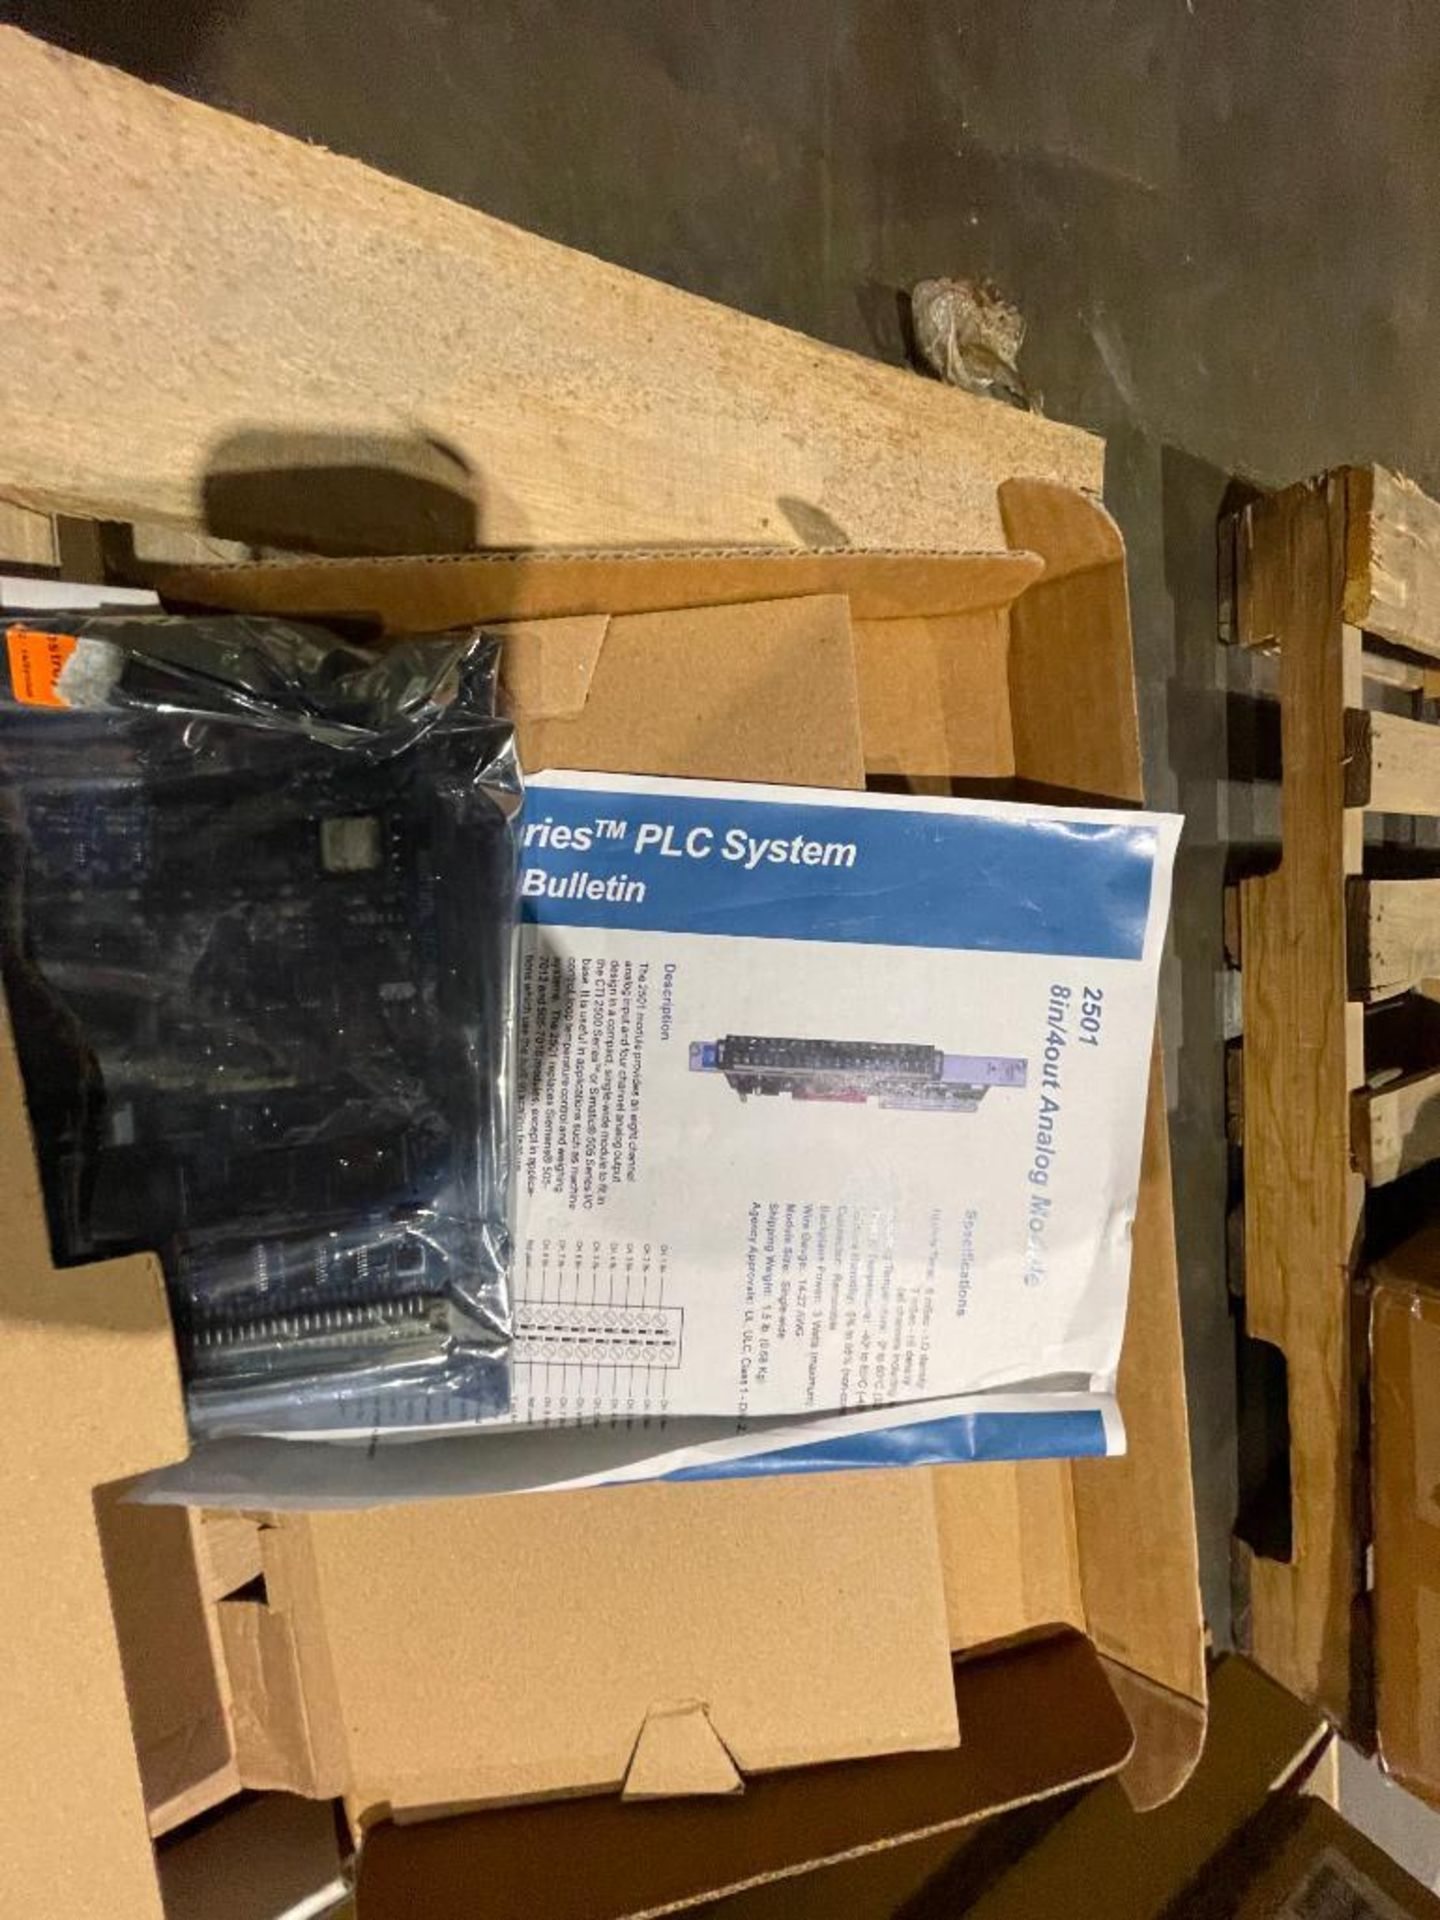 pallet of Siemens components - Image 4 of 5